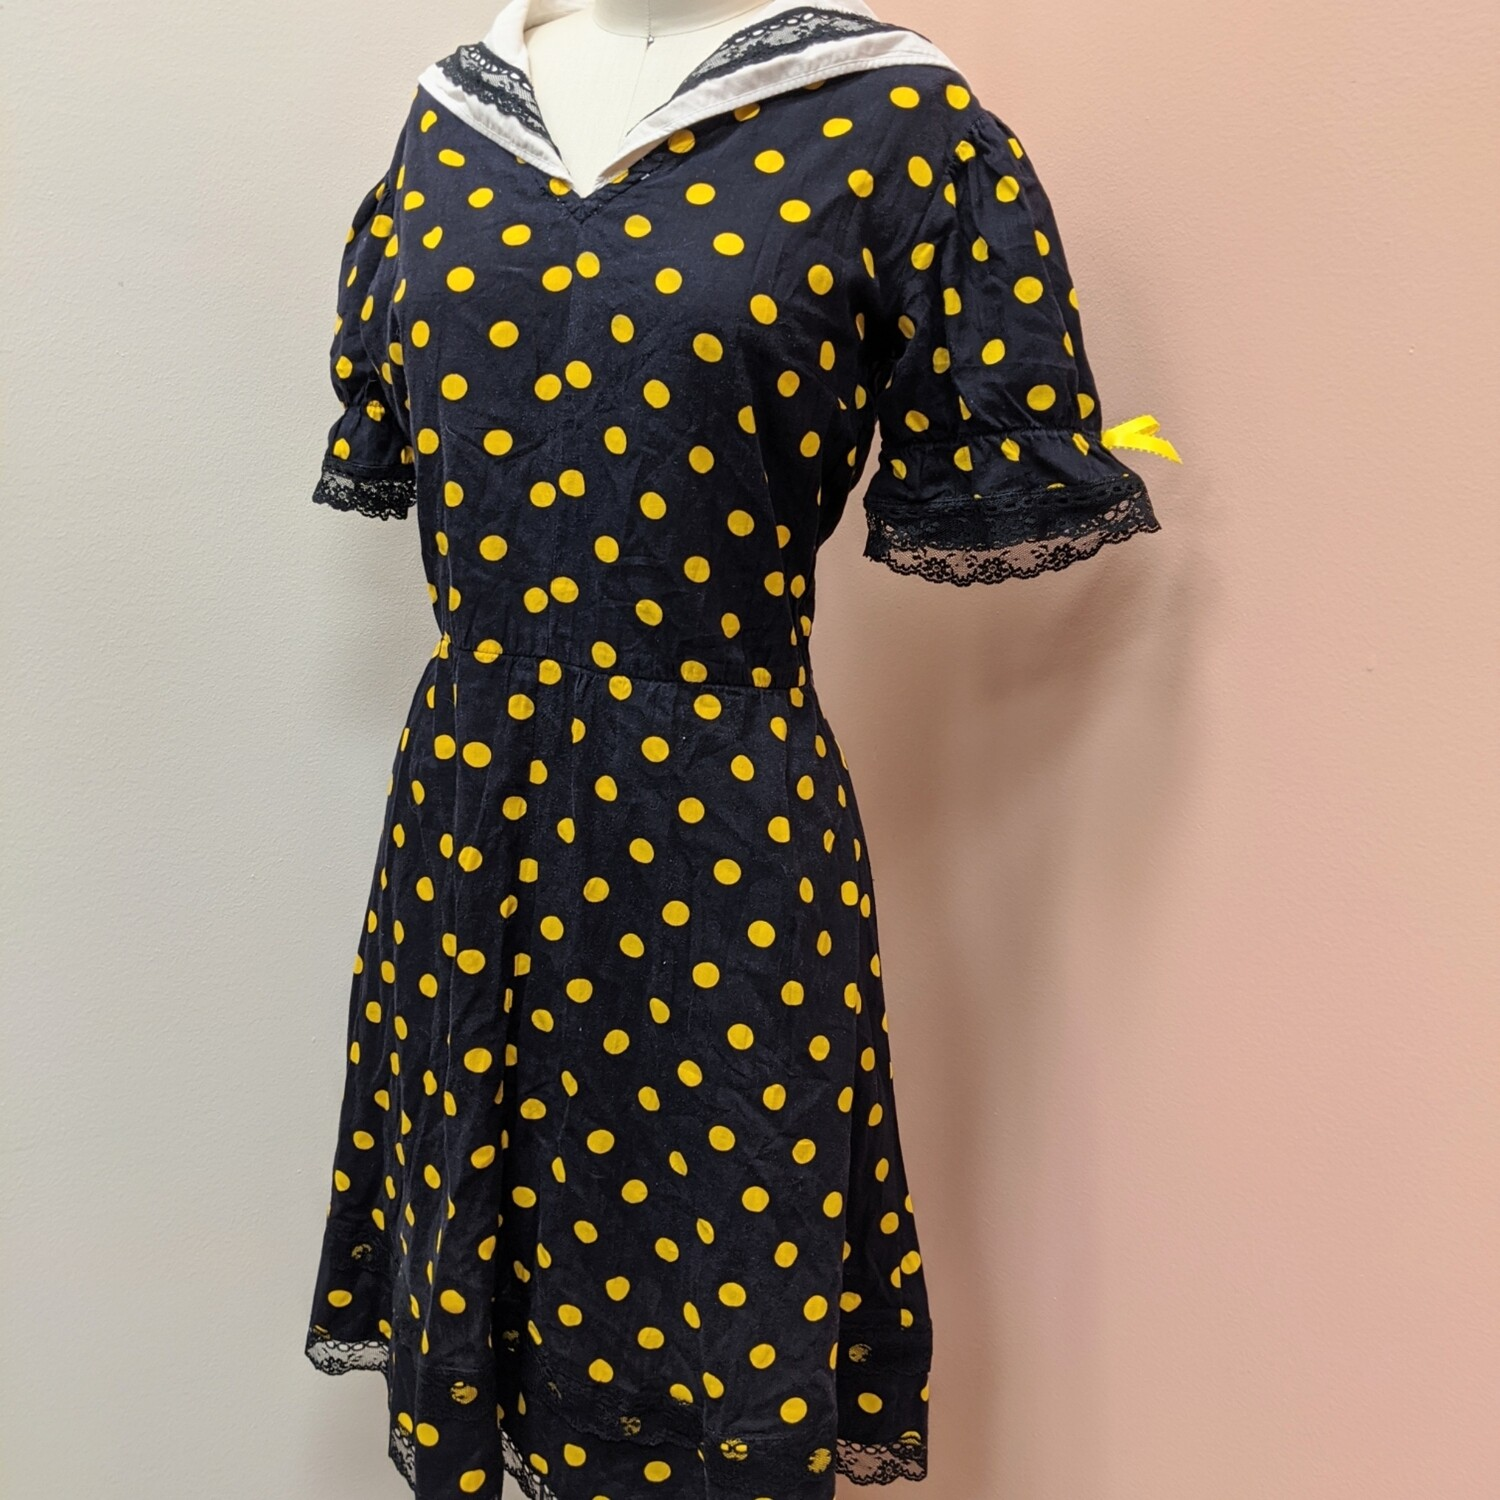 Polka Dot Handmade Vintage Sailor Babe Dress